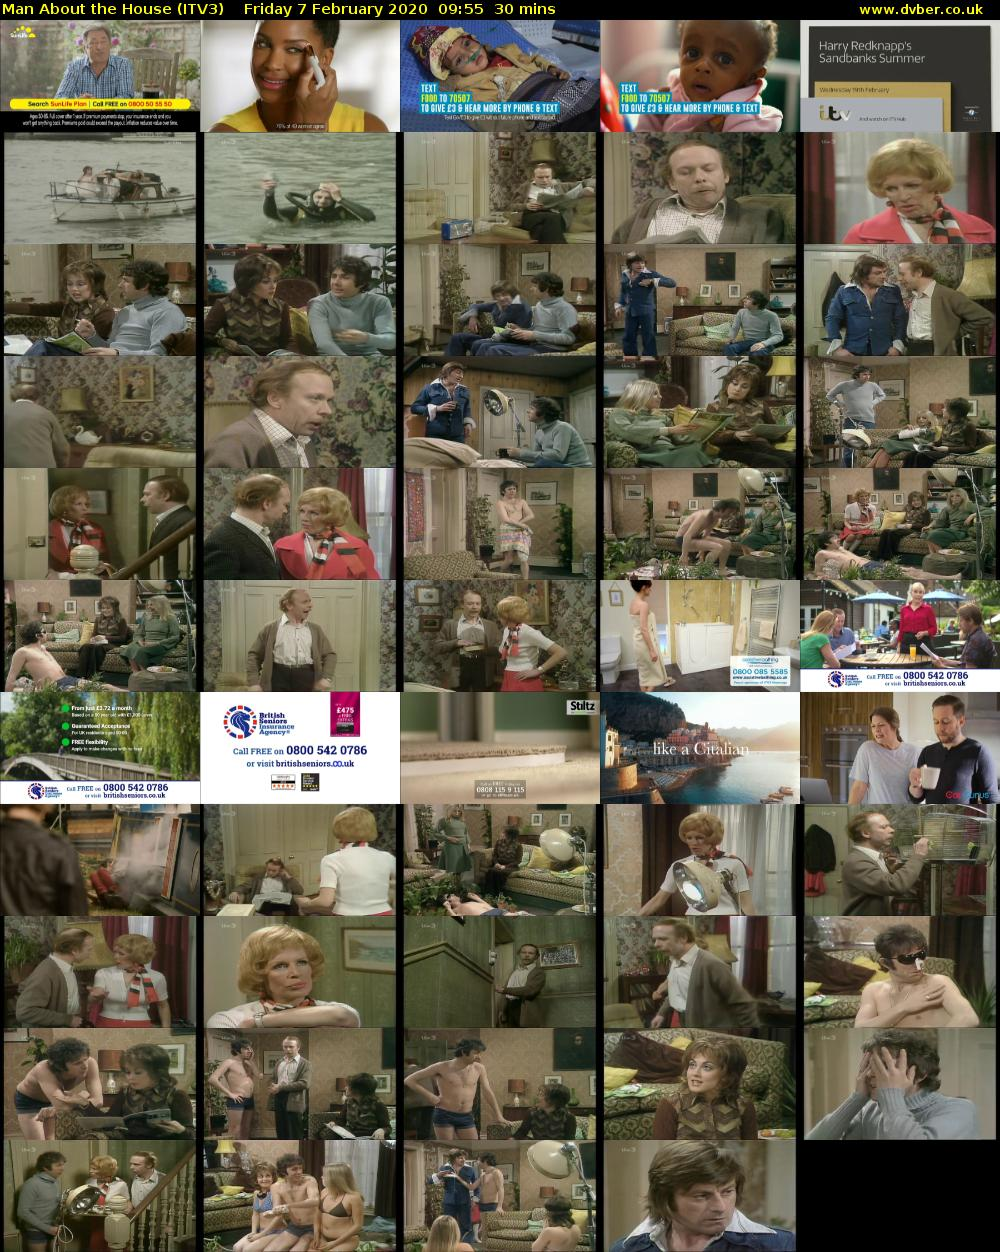 Man About the House (ITV3) Friday 7 February 2020 09:55 - 10:25